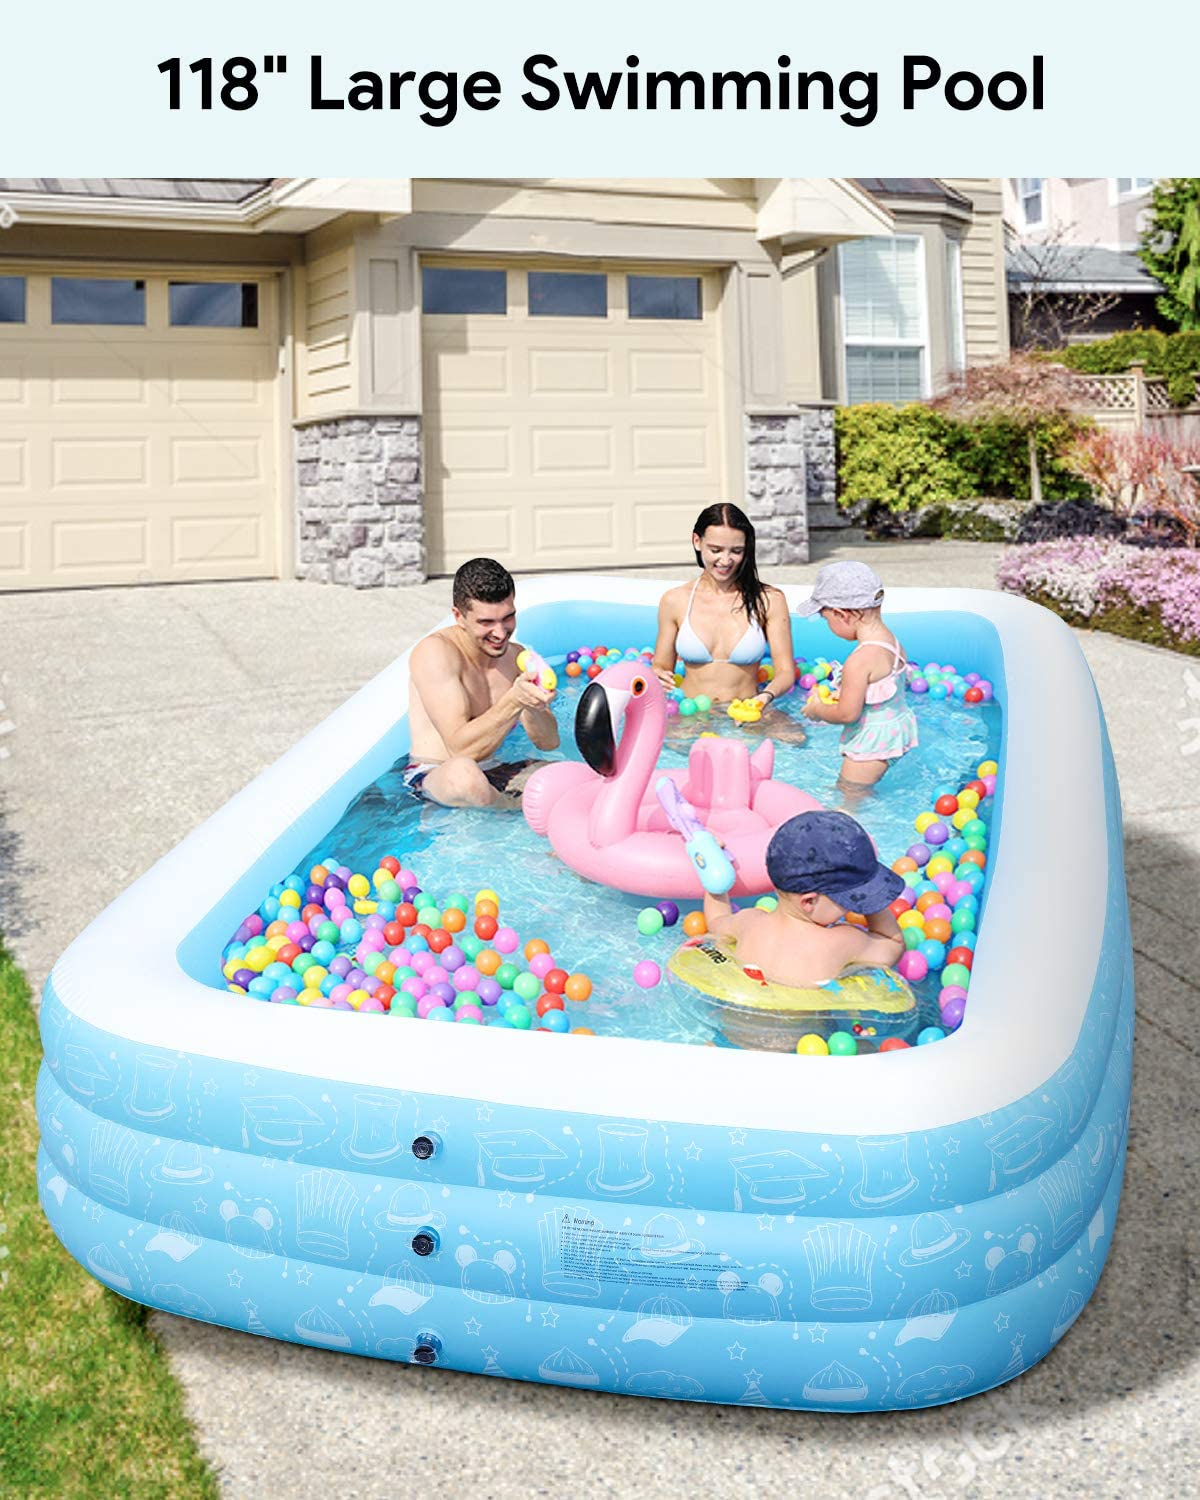 """Freedom Series Large Inflatable Pool, Inflatable Swimming Pools 118"""" x 73"""" x 20"""" Kiddie Pool Blow Up Pool Family Swimming Pool for Kids, Adults, Babies, Toddlers, Outdoor, Garden, Backyard"""